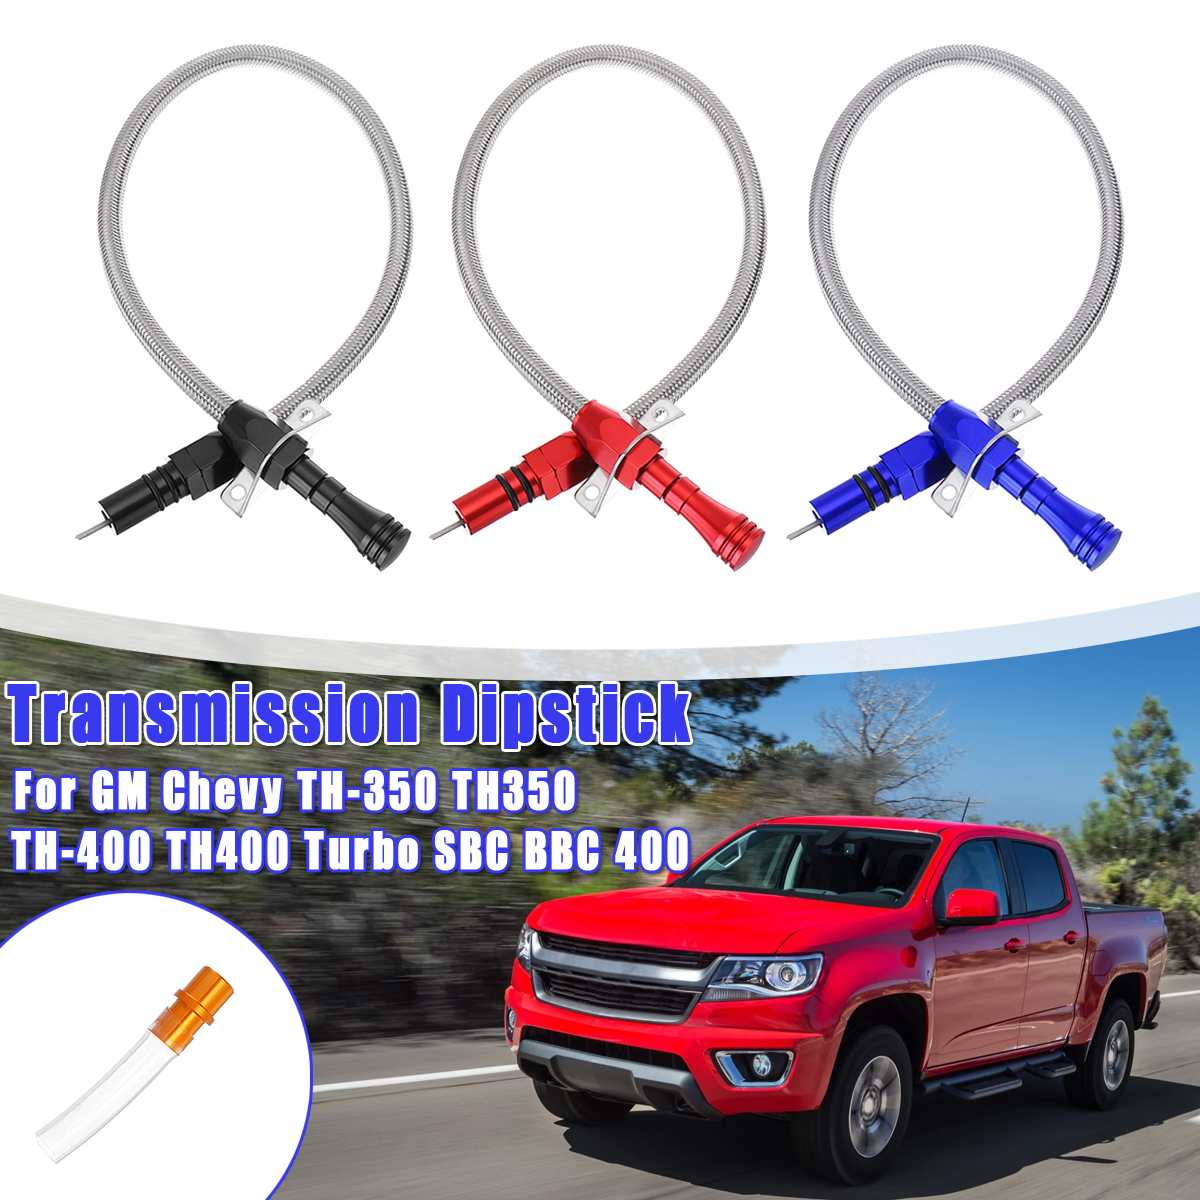 TH400 Flexible Stainless Transmission Dipstick For GM Chevy TH-350 TH350 TH-400 TH400 Turbo SBC For BBC 400 1set Black,Red,Blue